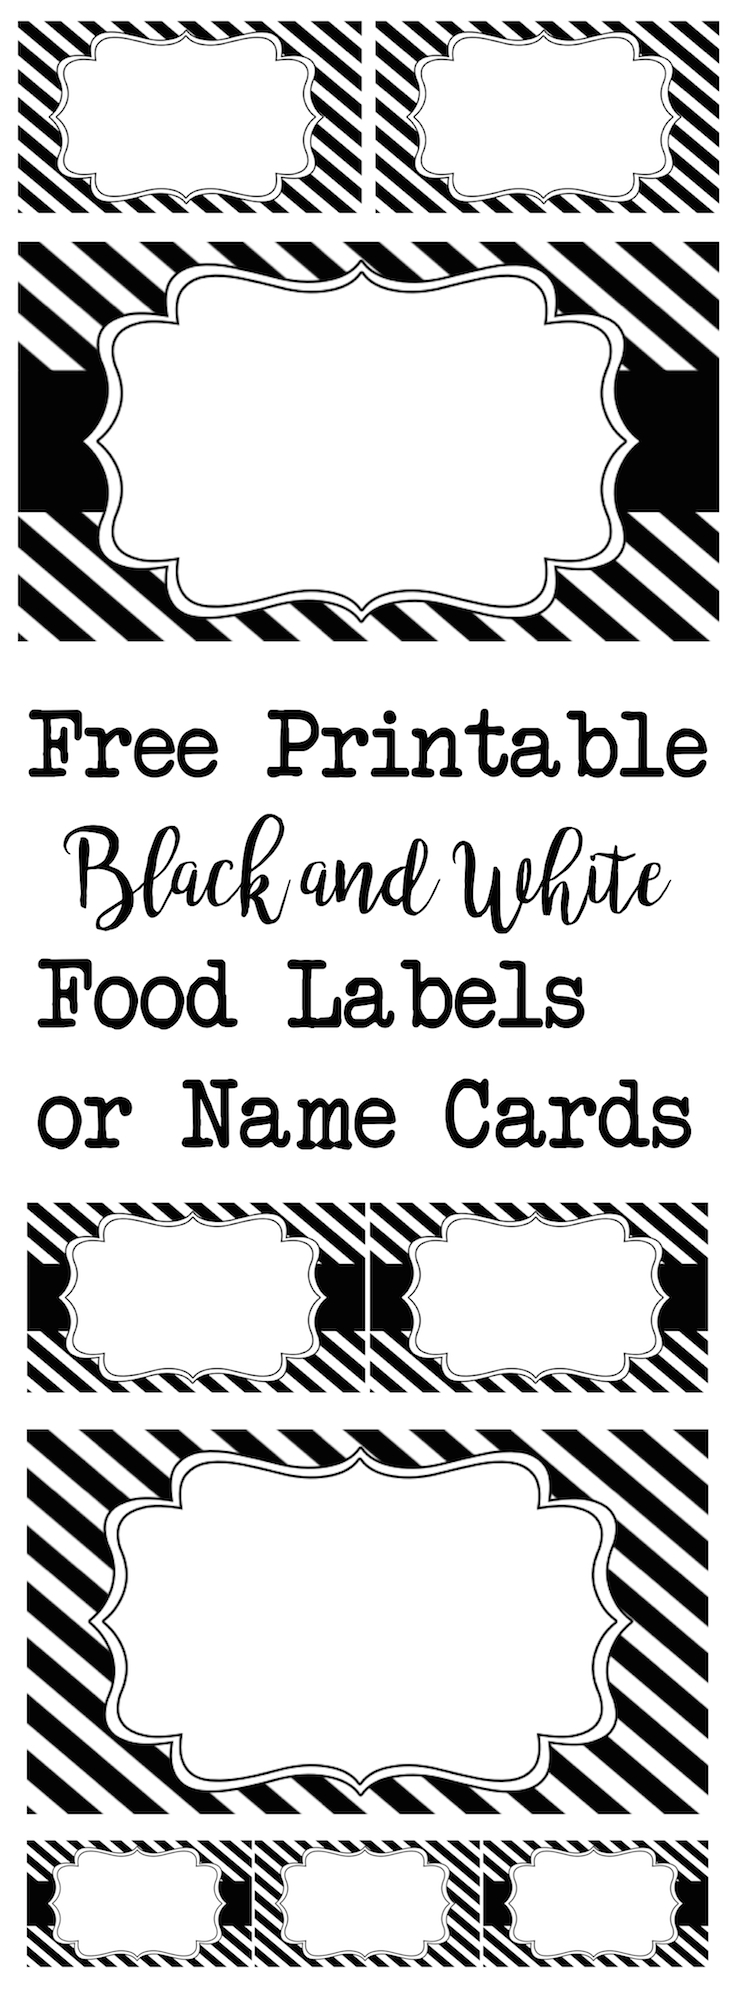 Black & White Food Labels or Name Cards. Use for graduation, halloween, an over the hill party, a black and white wedding. These are elegant and versatile.